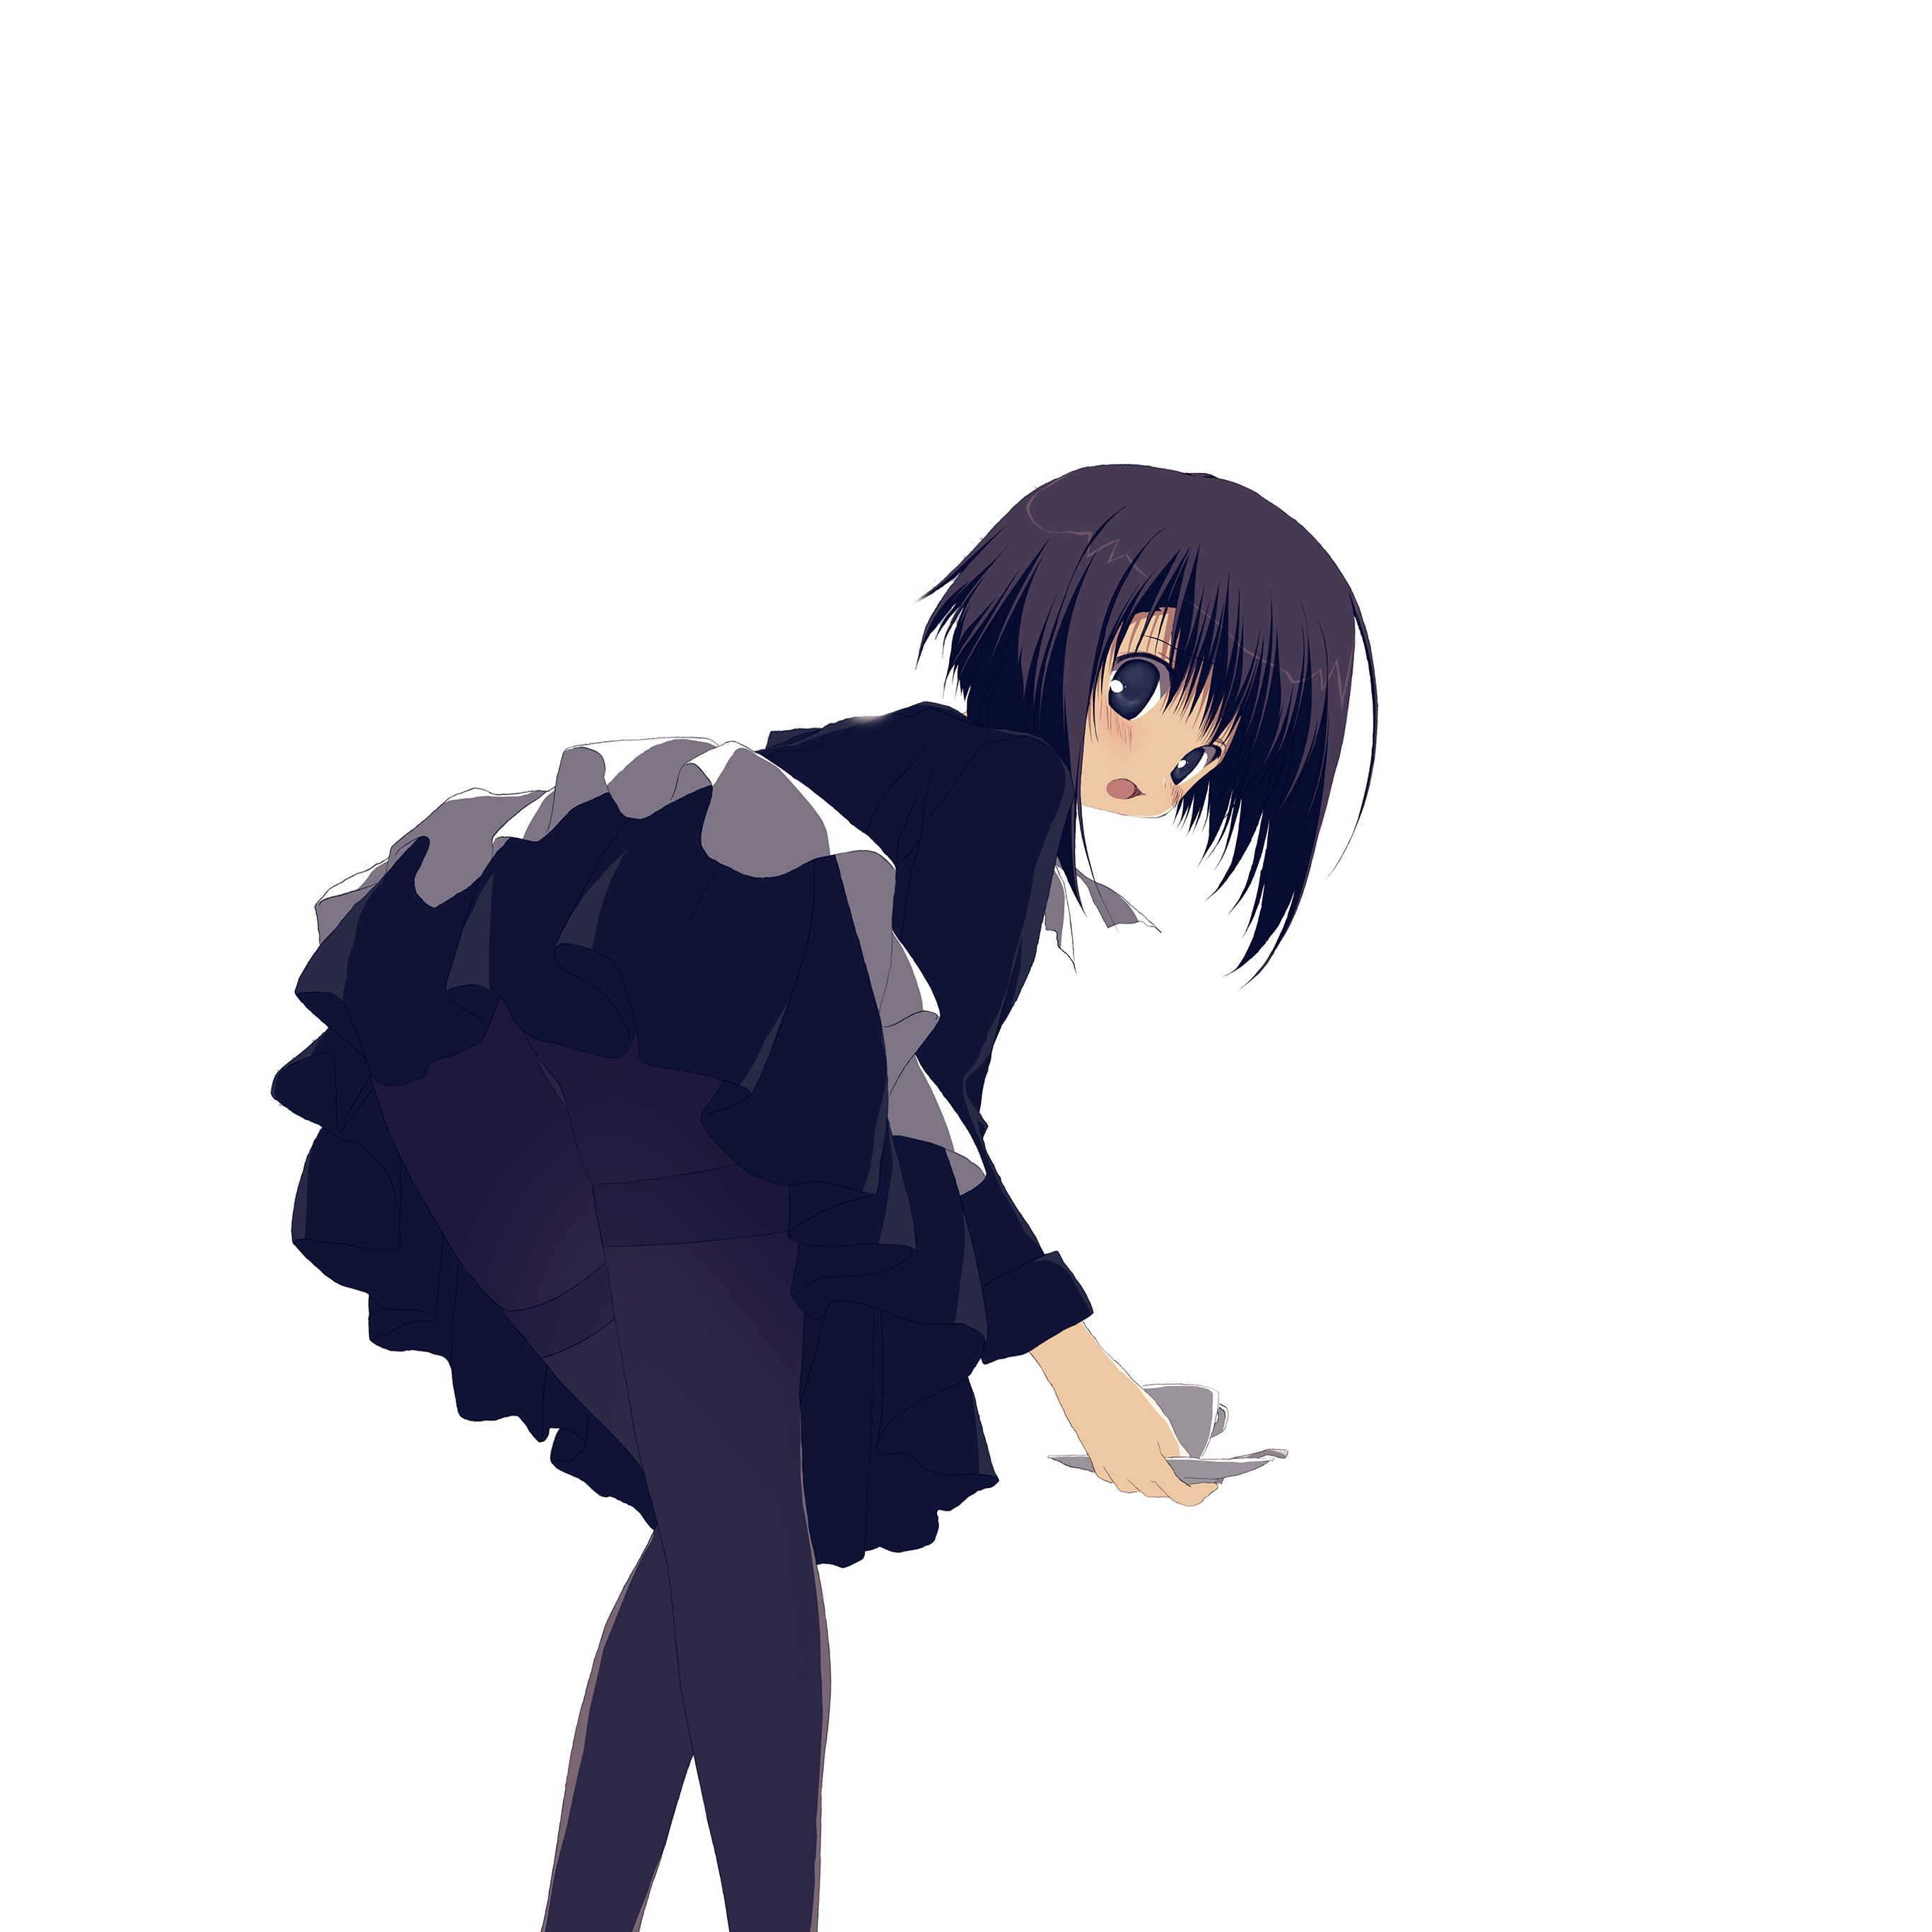 Av81 Girl Anime Black Dress Cute Illustration Art Japanese Wallpaper